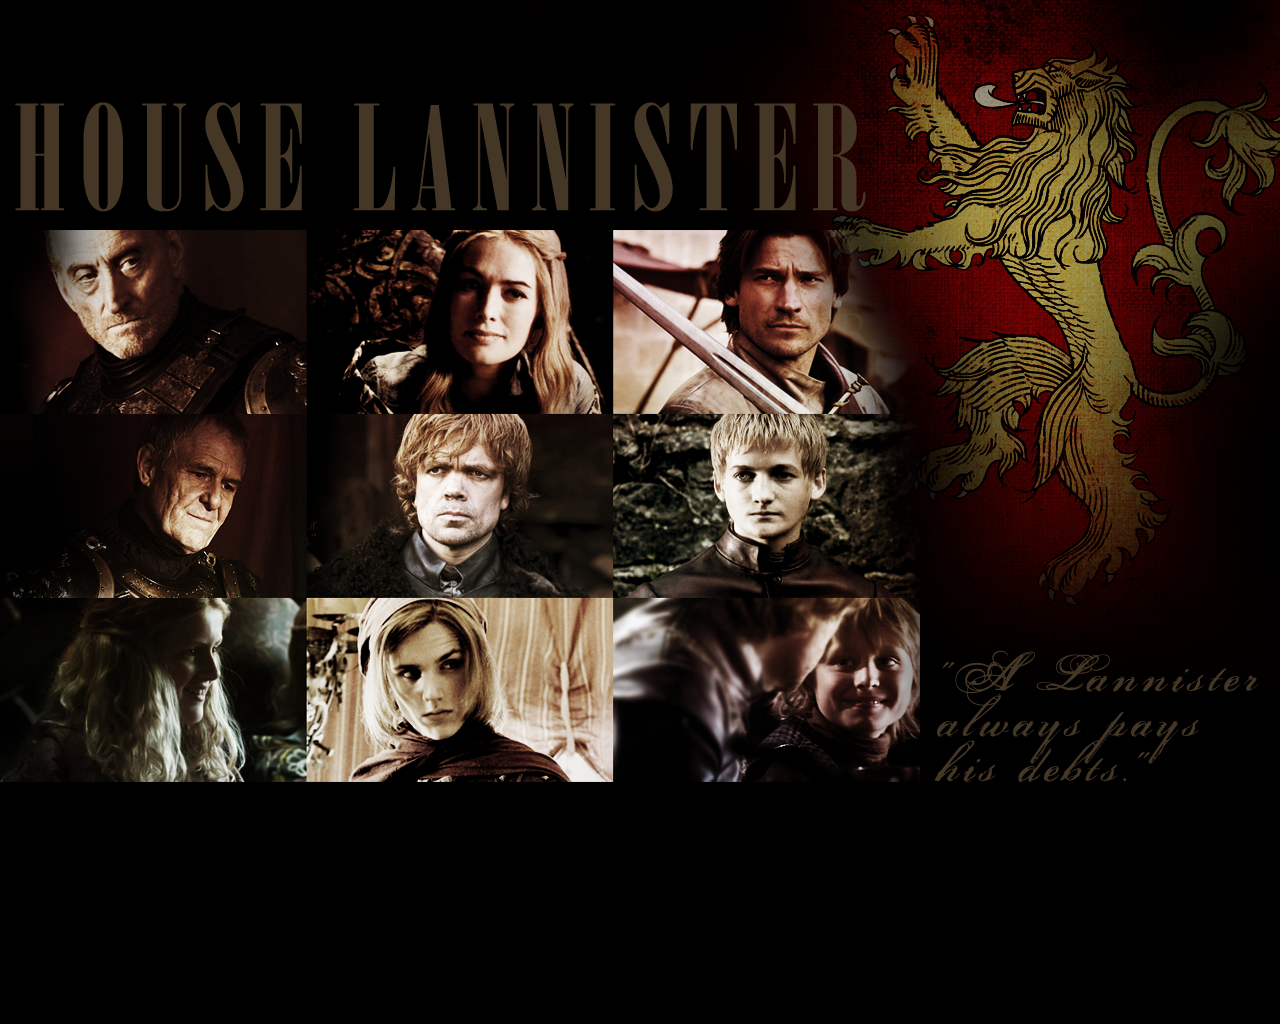 house of lannister House lannister sigil: golden lion on a field of crimson motto: hear me roar the cake: a red velvet cake with raspberry compote, cream cheese filling, whipped mascarpone filling, and fluffy vanilla frosting the outside of this cake looks very proper, clean, decorated perfectly, because, for the lannisters, appearances are everything.